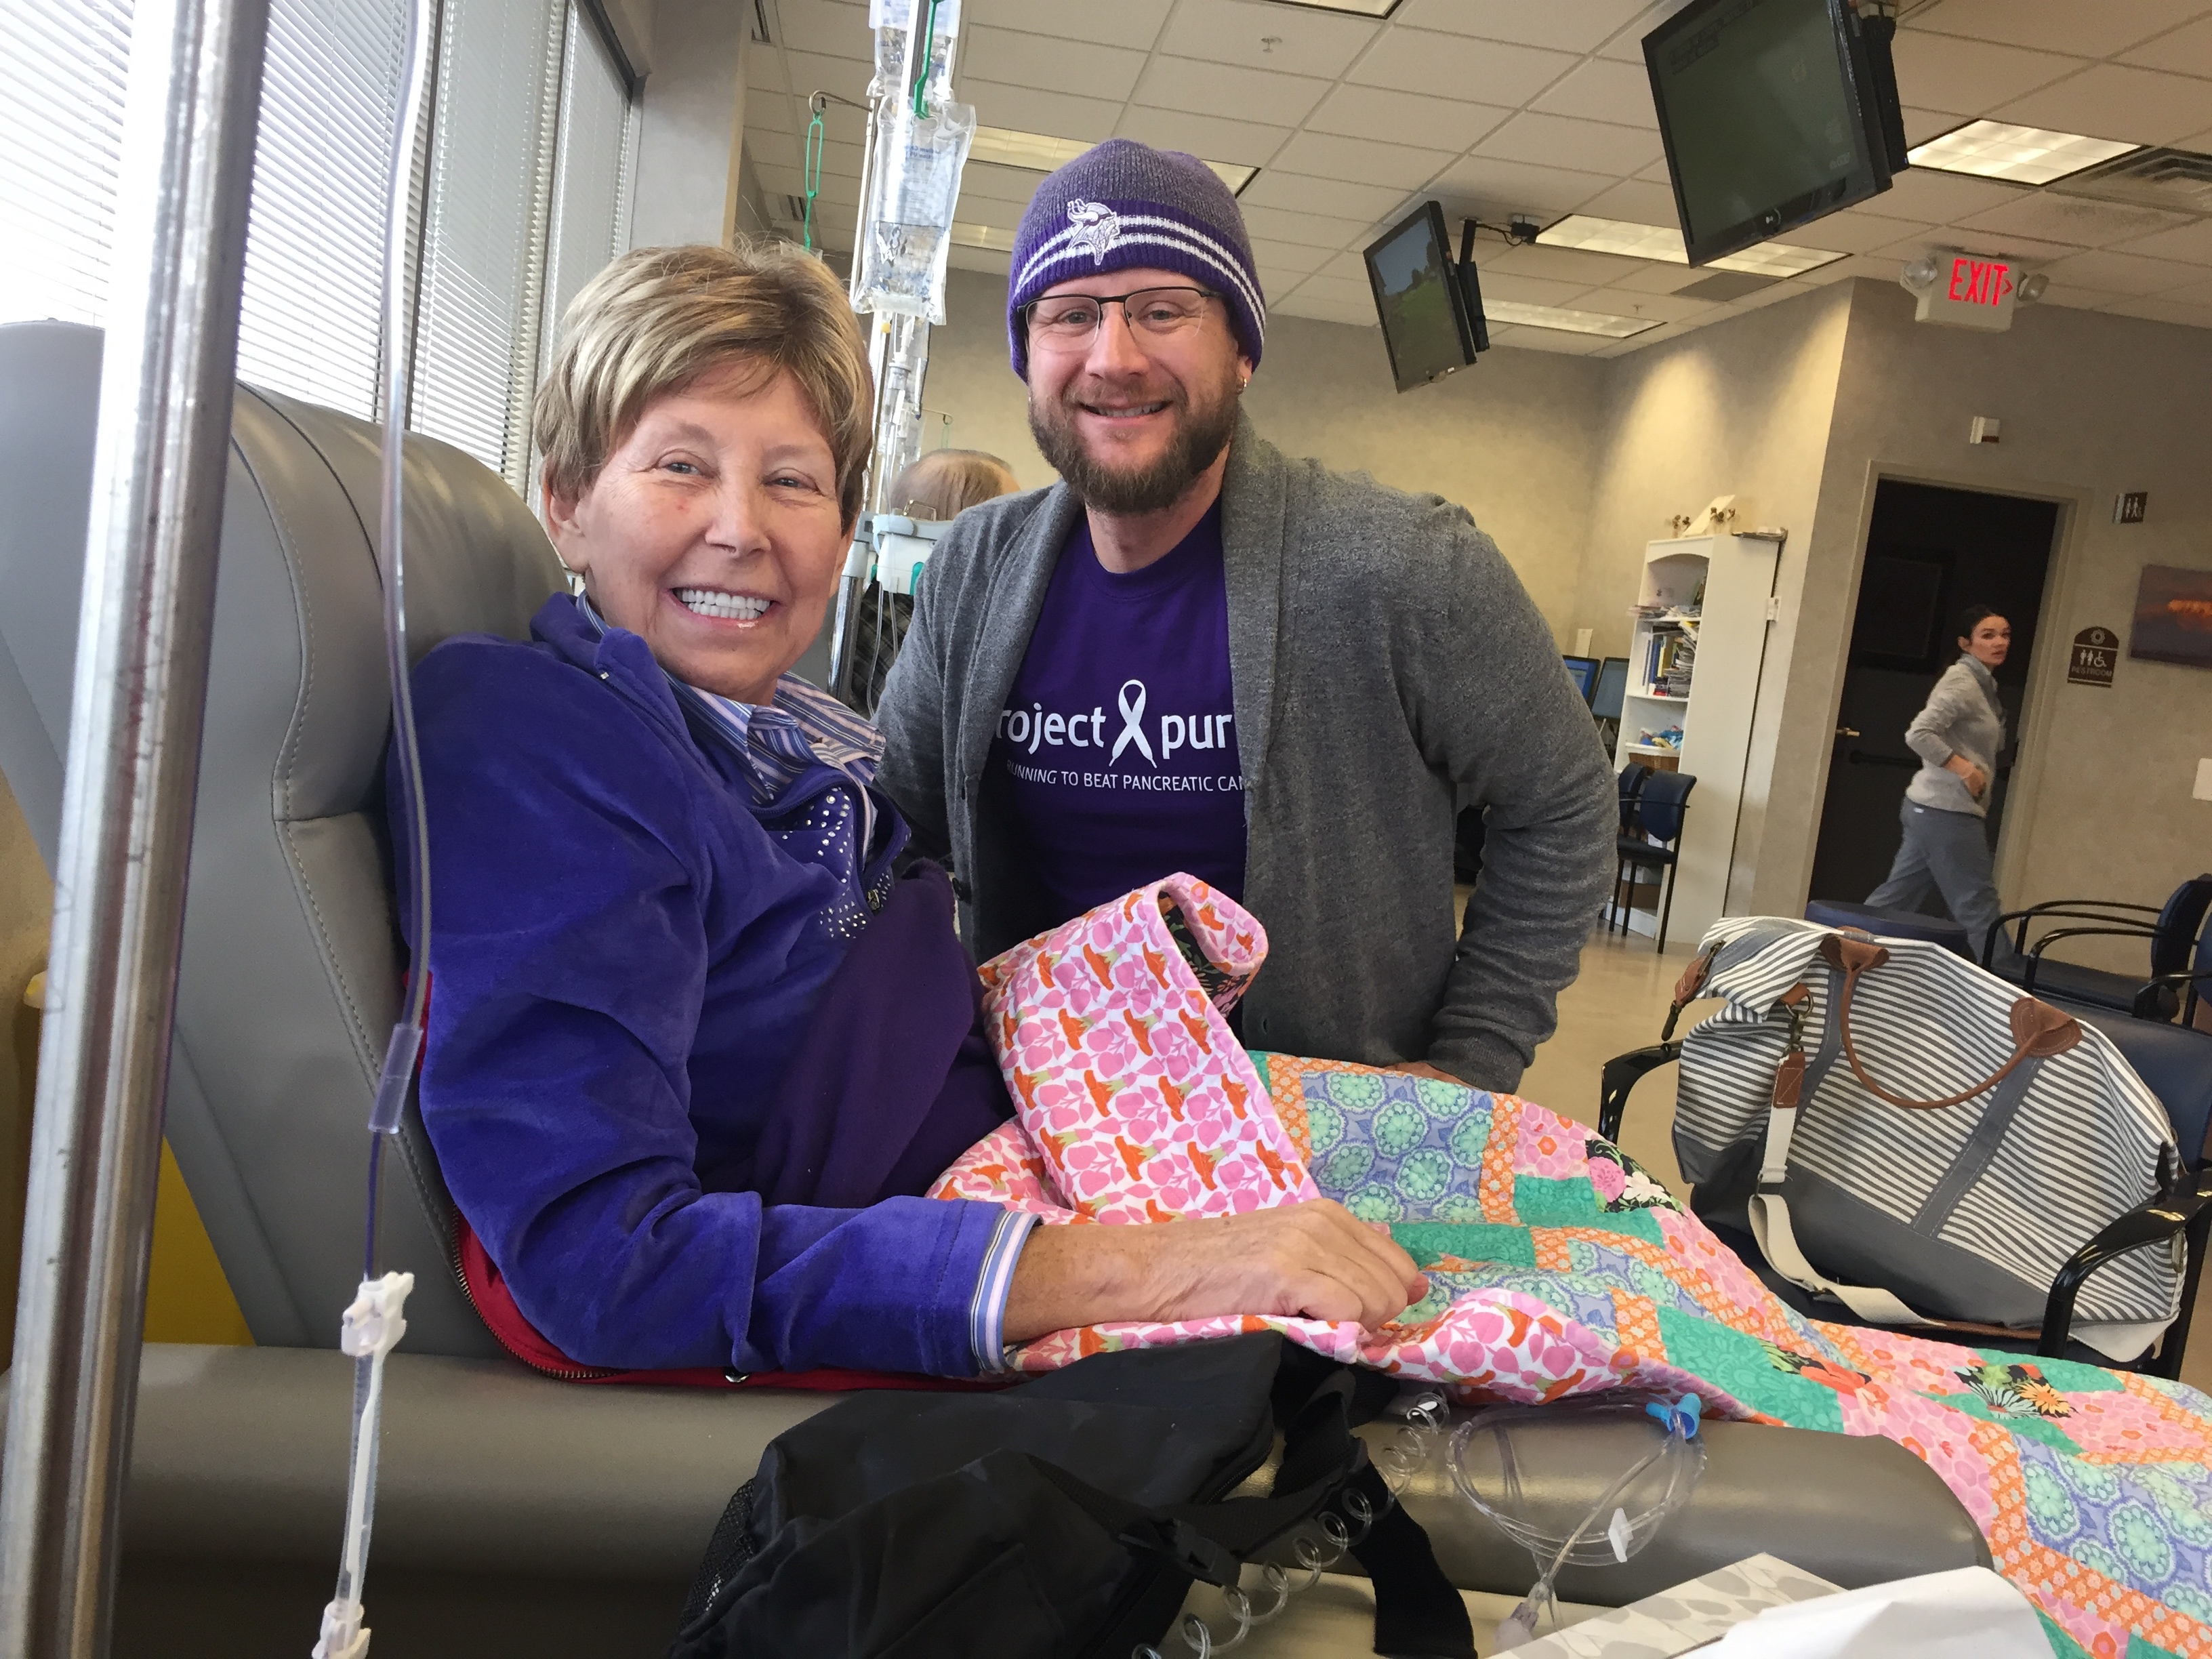 Mother's Day Pancreatic cancer